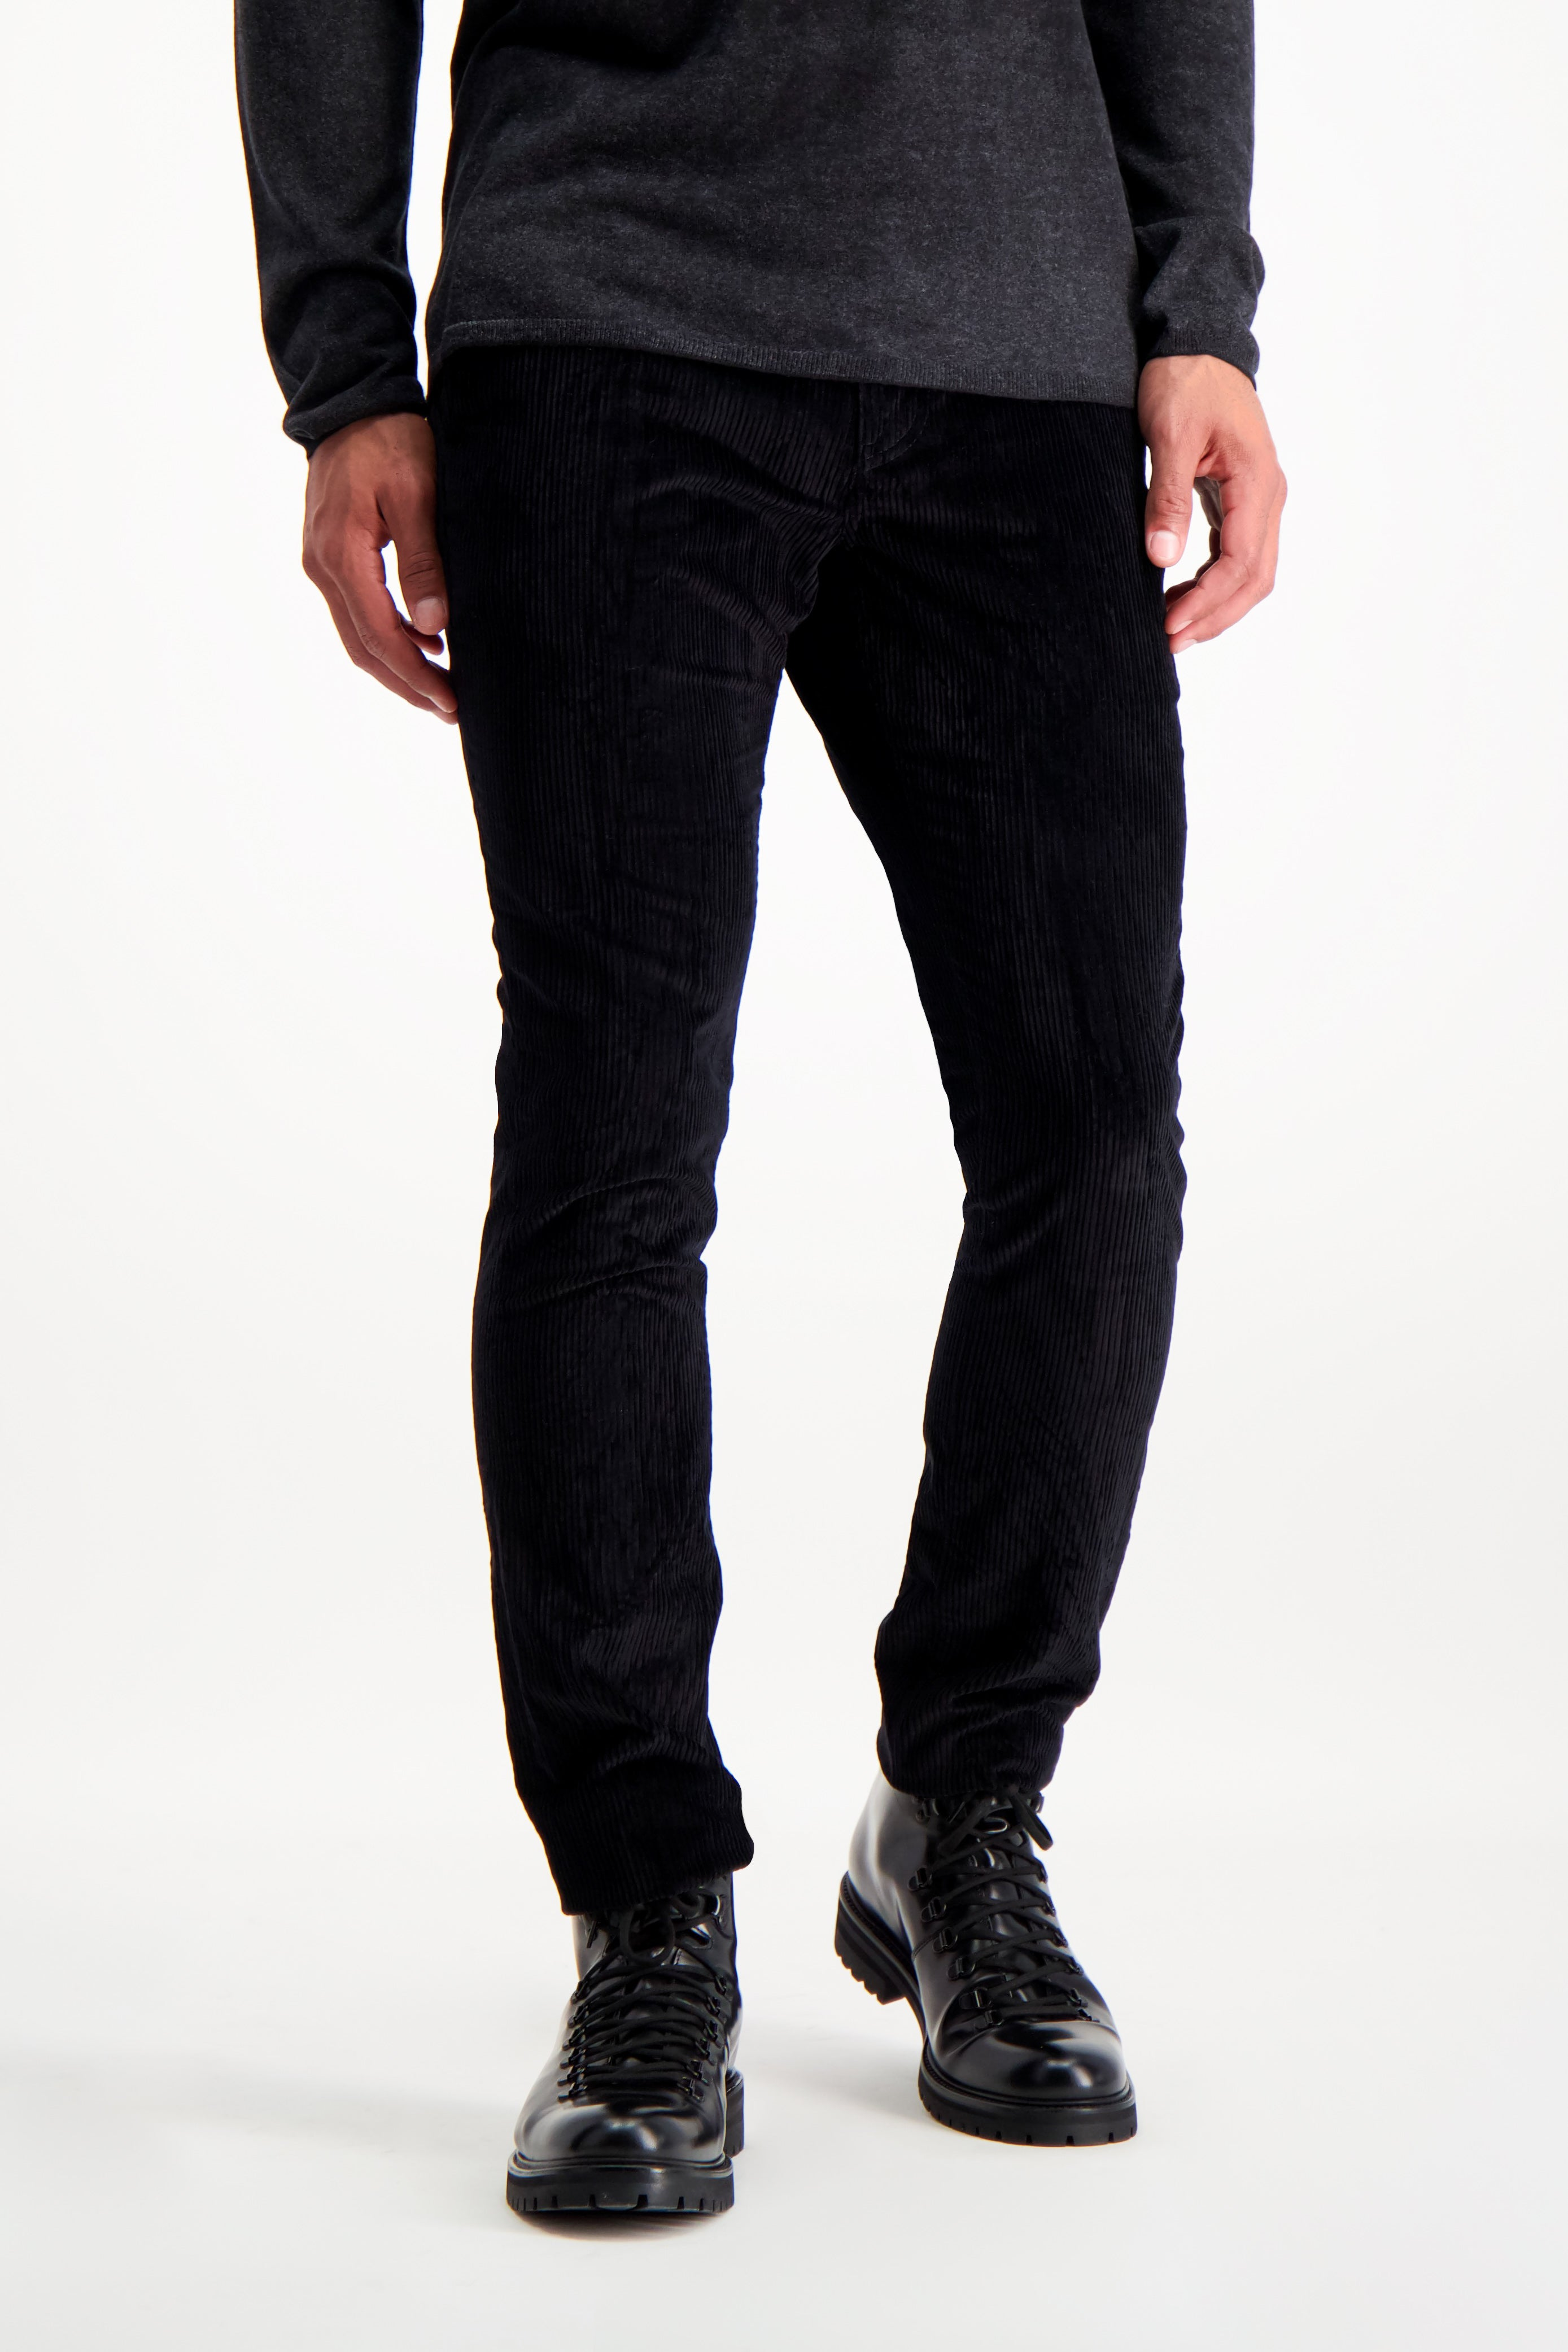 Front Crop Image Of Model Wearing John Varvatos Men's Motor City Jean with Zip Fly Black